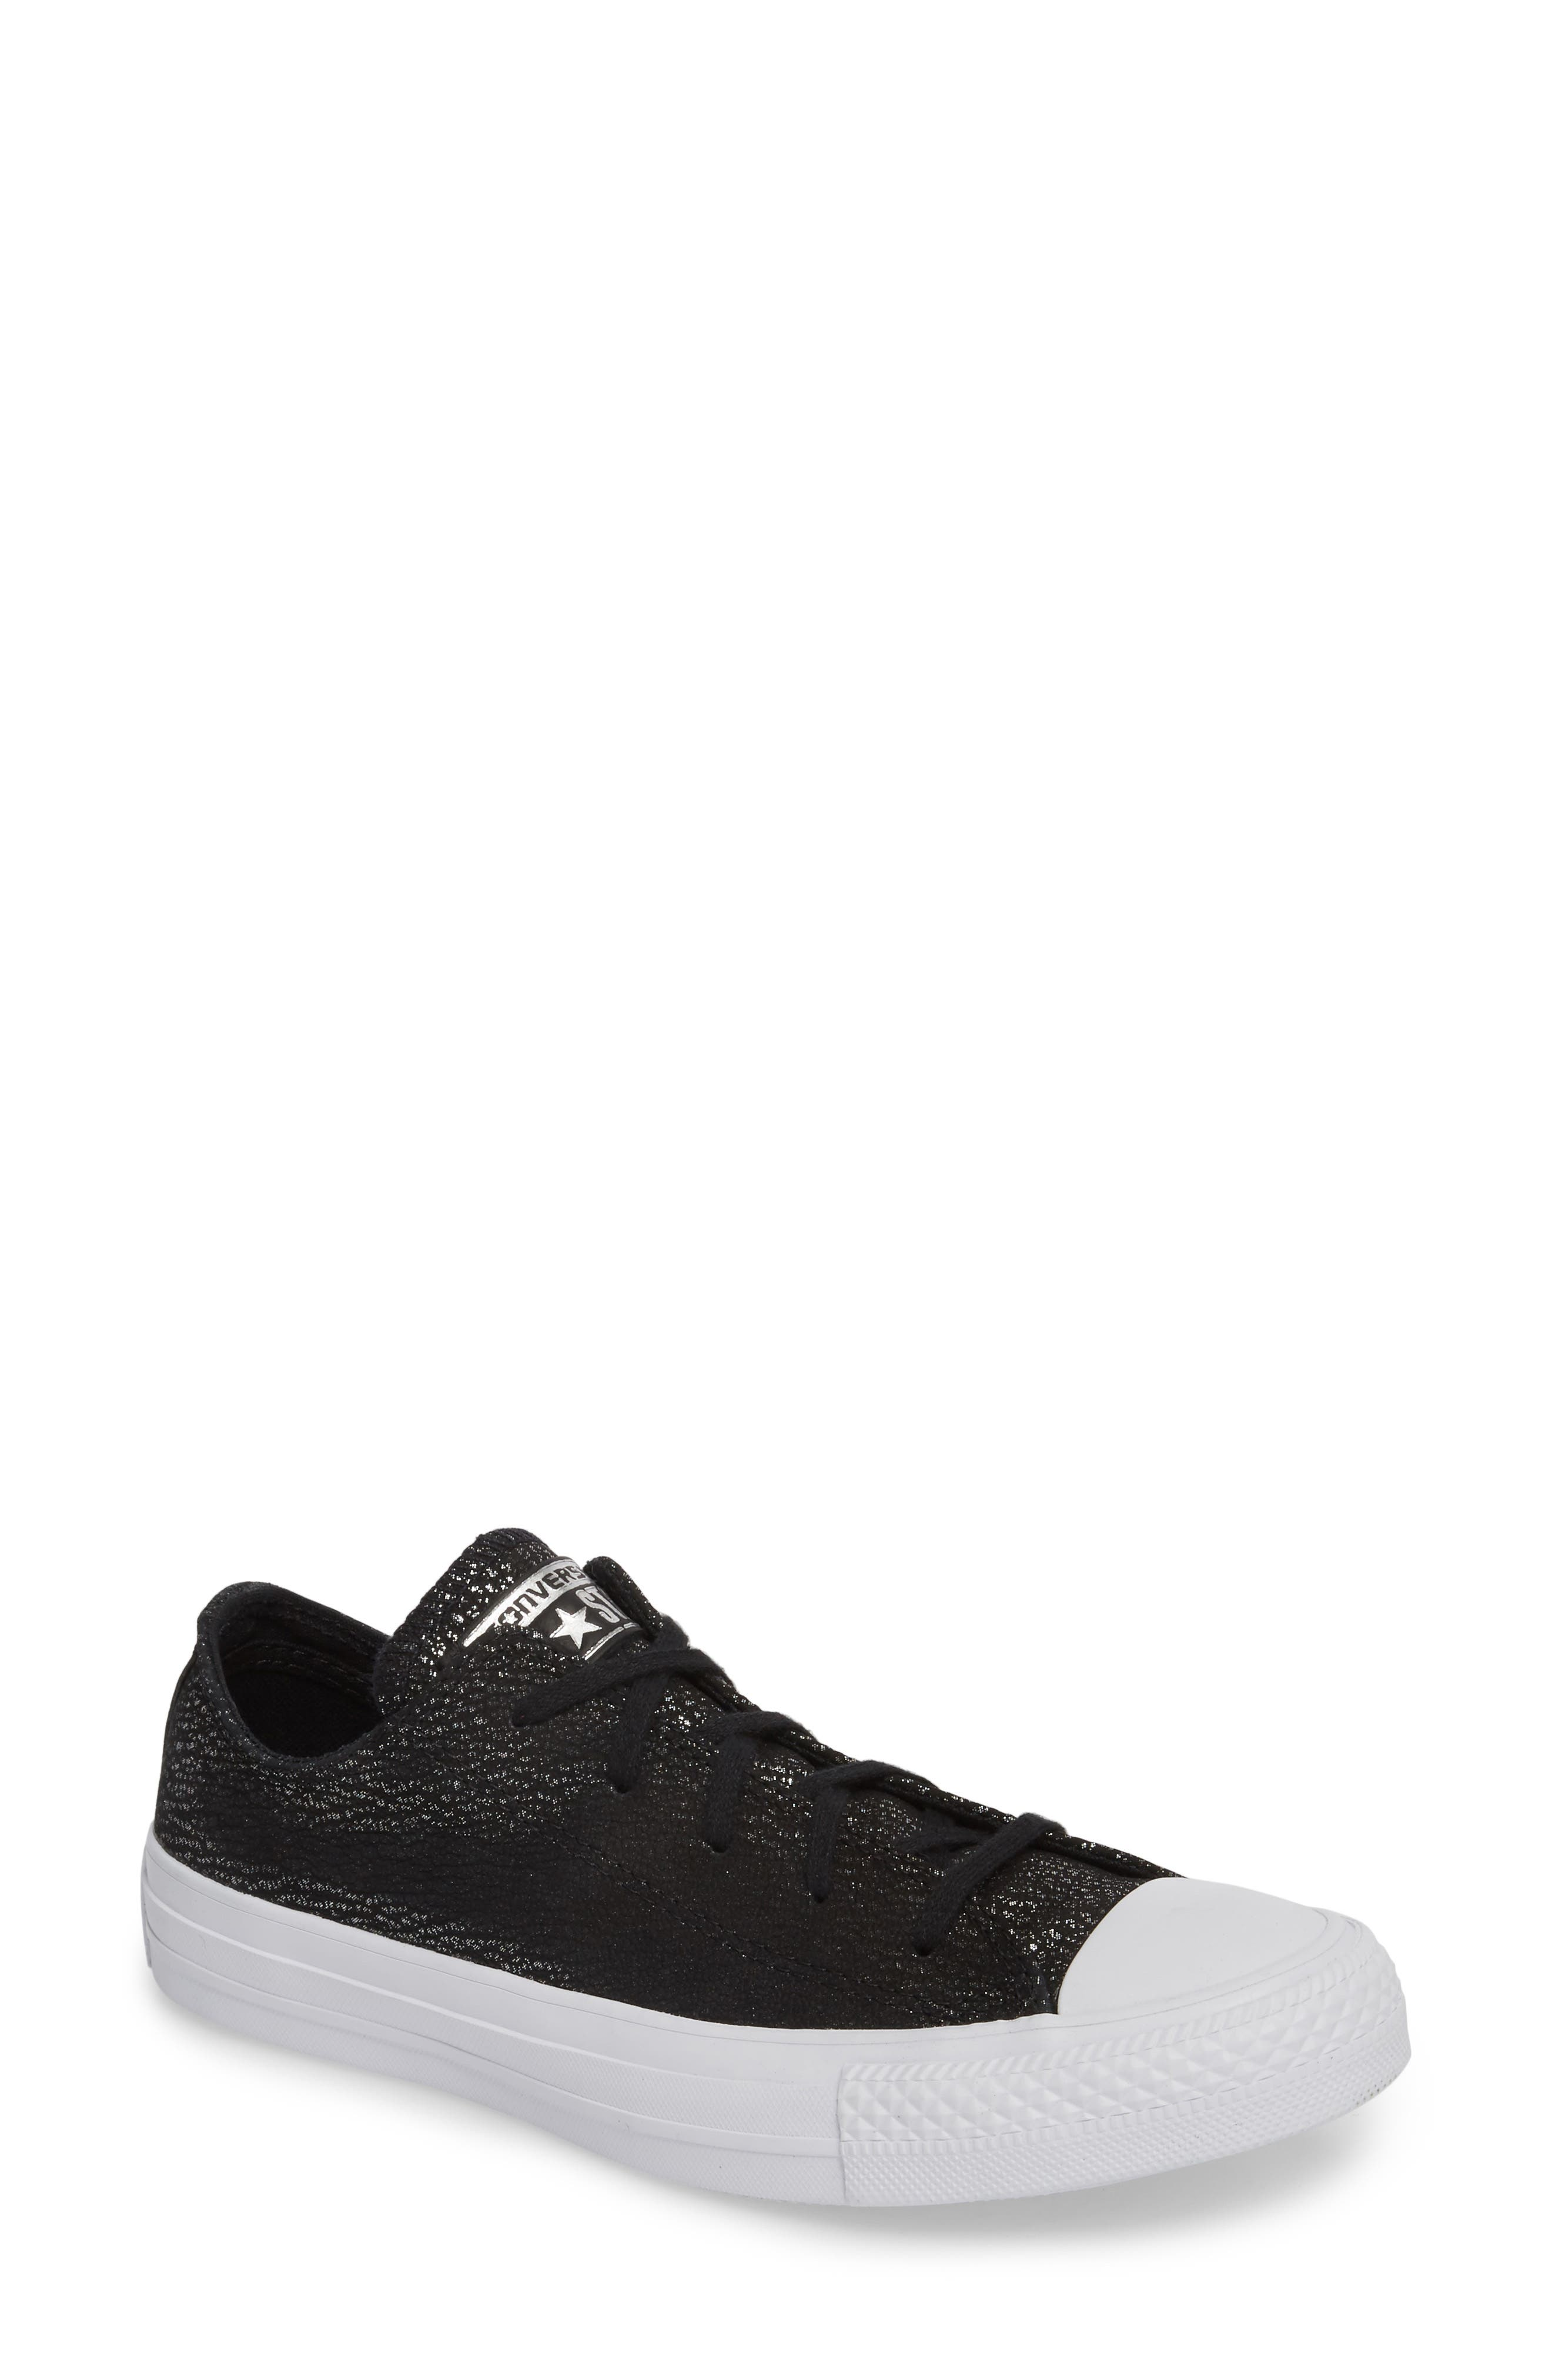 Chuck Taylor<sup>®</sup> All Star<sup>®</sup> Tipped Metallic Low Top Sneaker,                         Main,                         color, 001